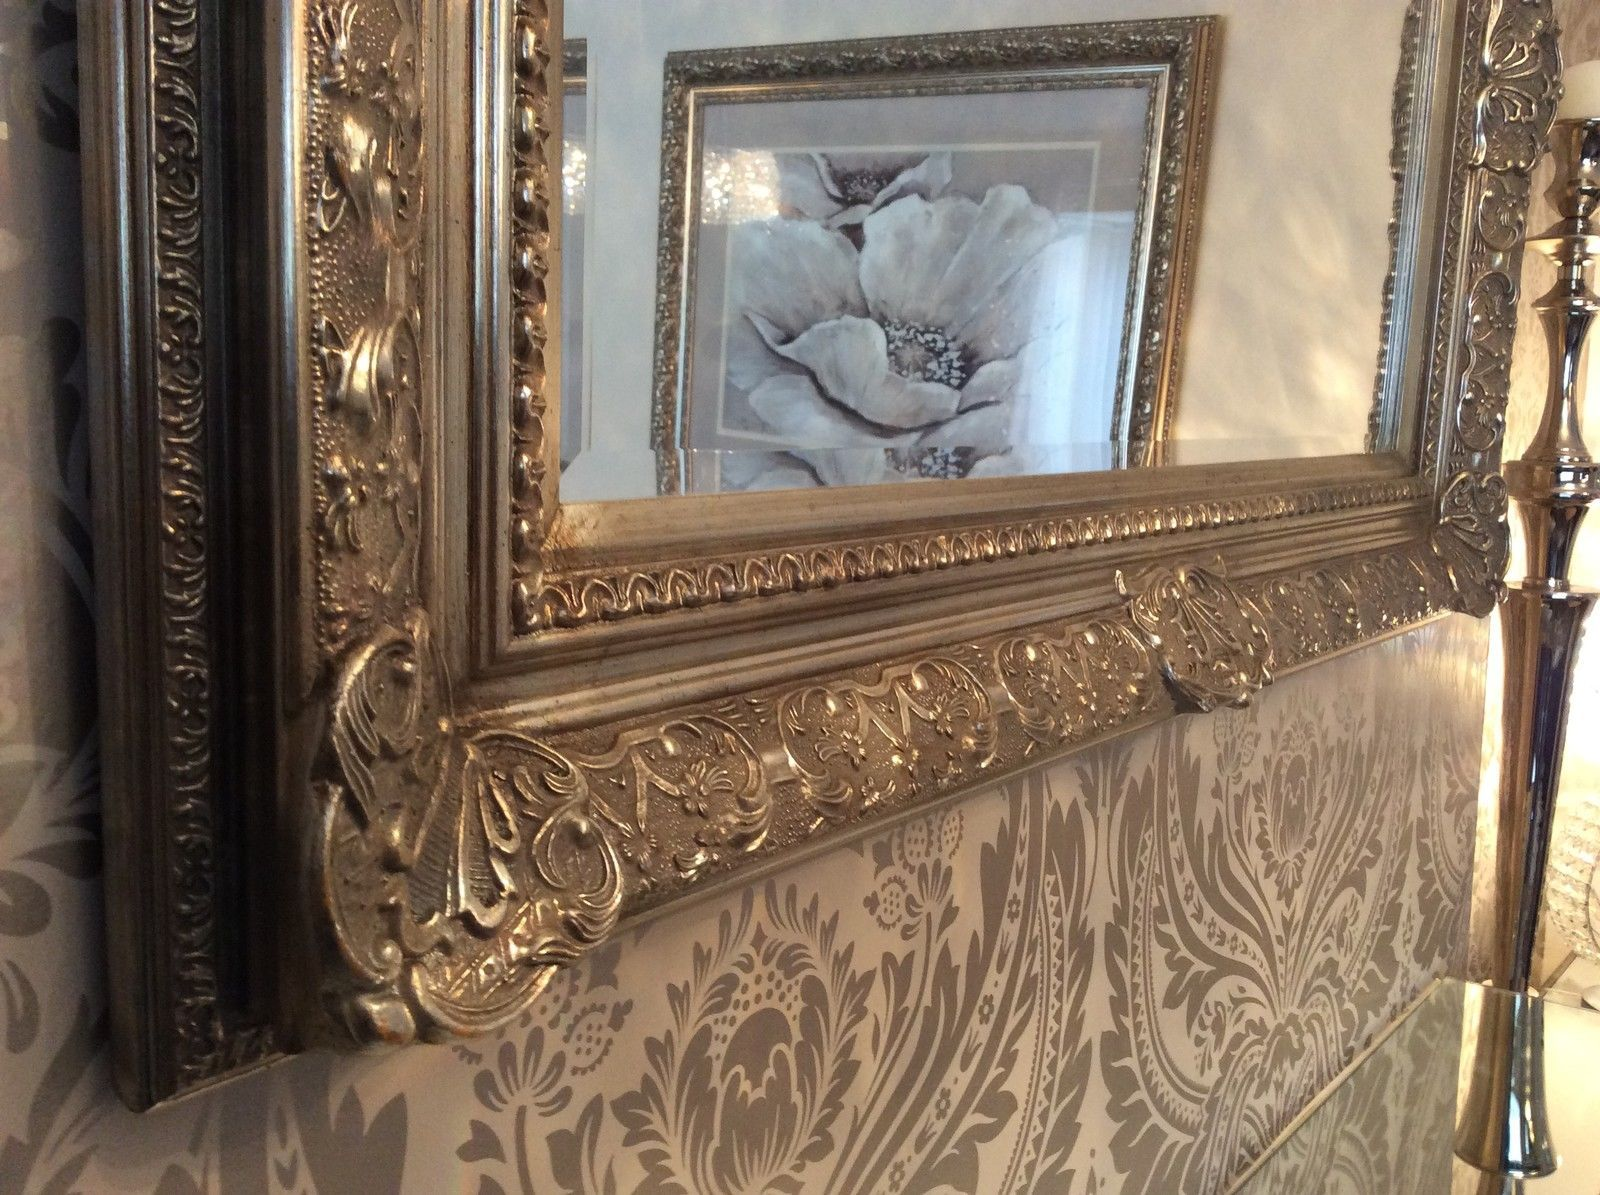 Decorative Antique Silver Wall Mirror Full Range Of